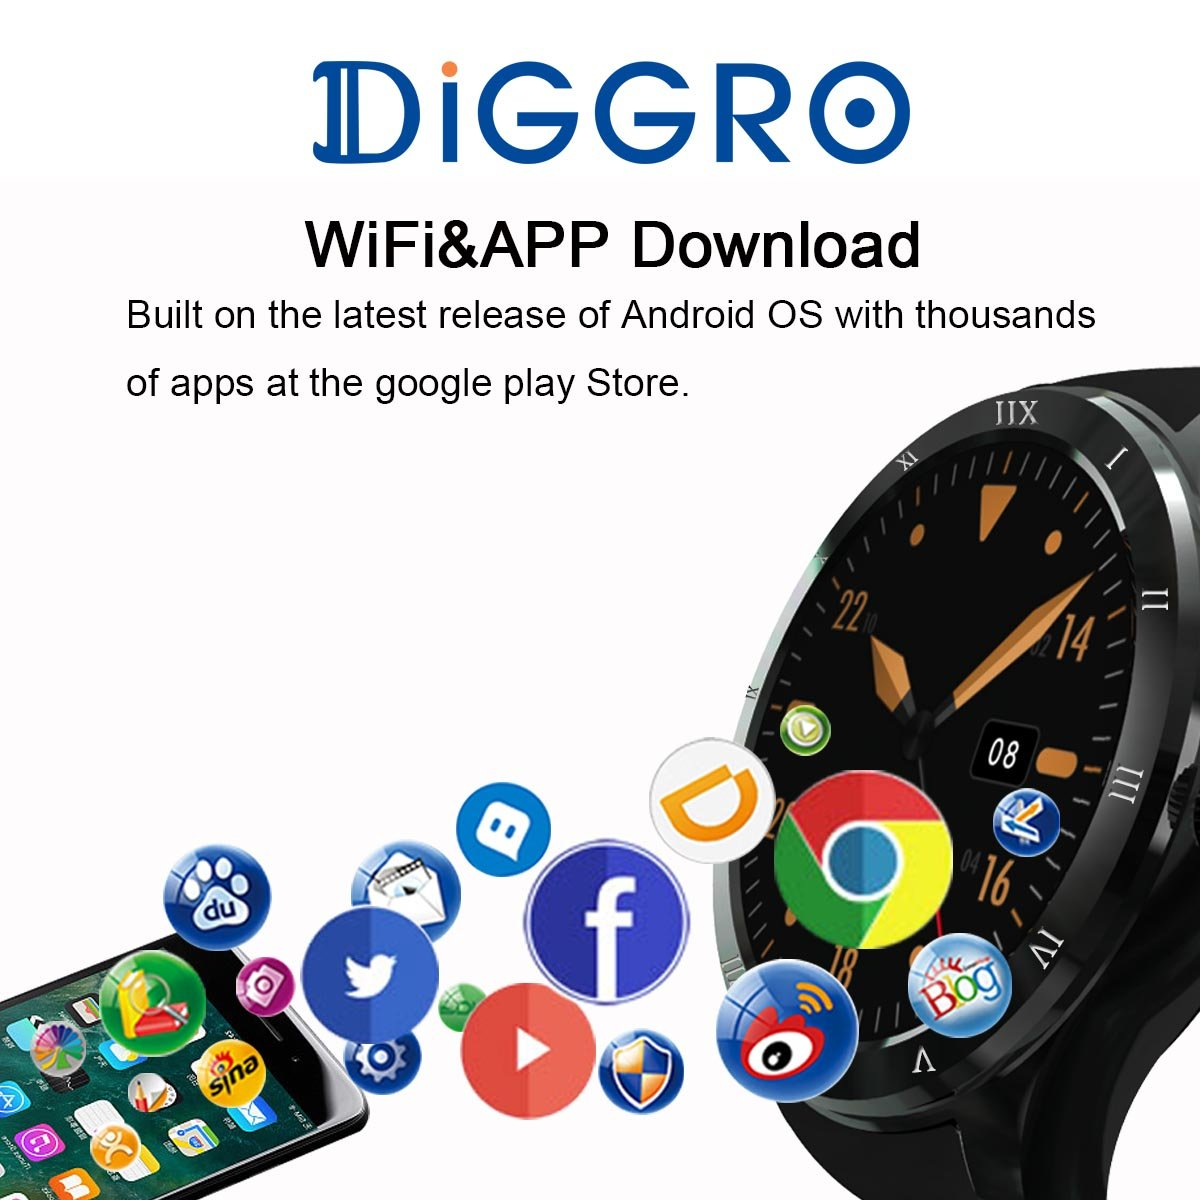 Amazon.com: Diggro DI05 Smart Watch Bluetooth MTK6580 Support WIFI GPS Microphone Speaker 3G Nano SIM Card 1.3GHZ Quad Core RAM/ROM 512MB+8GB 1.39inch ...